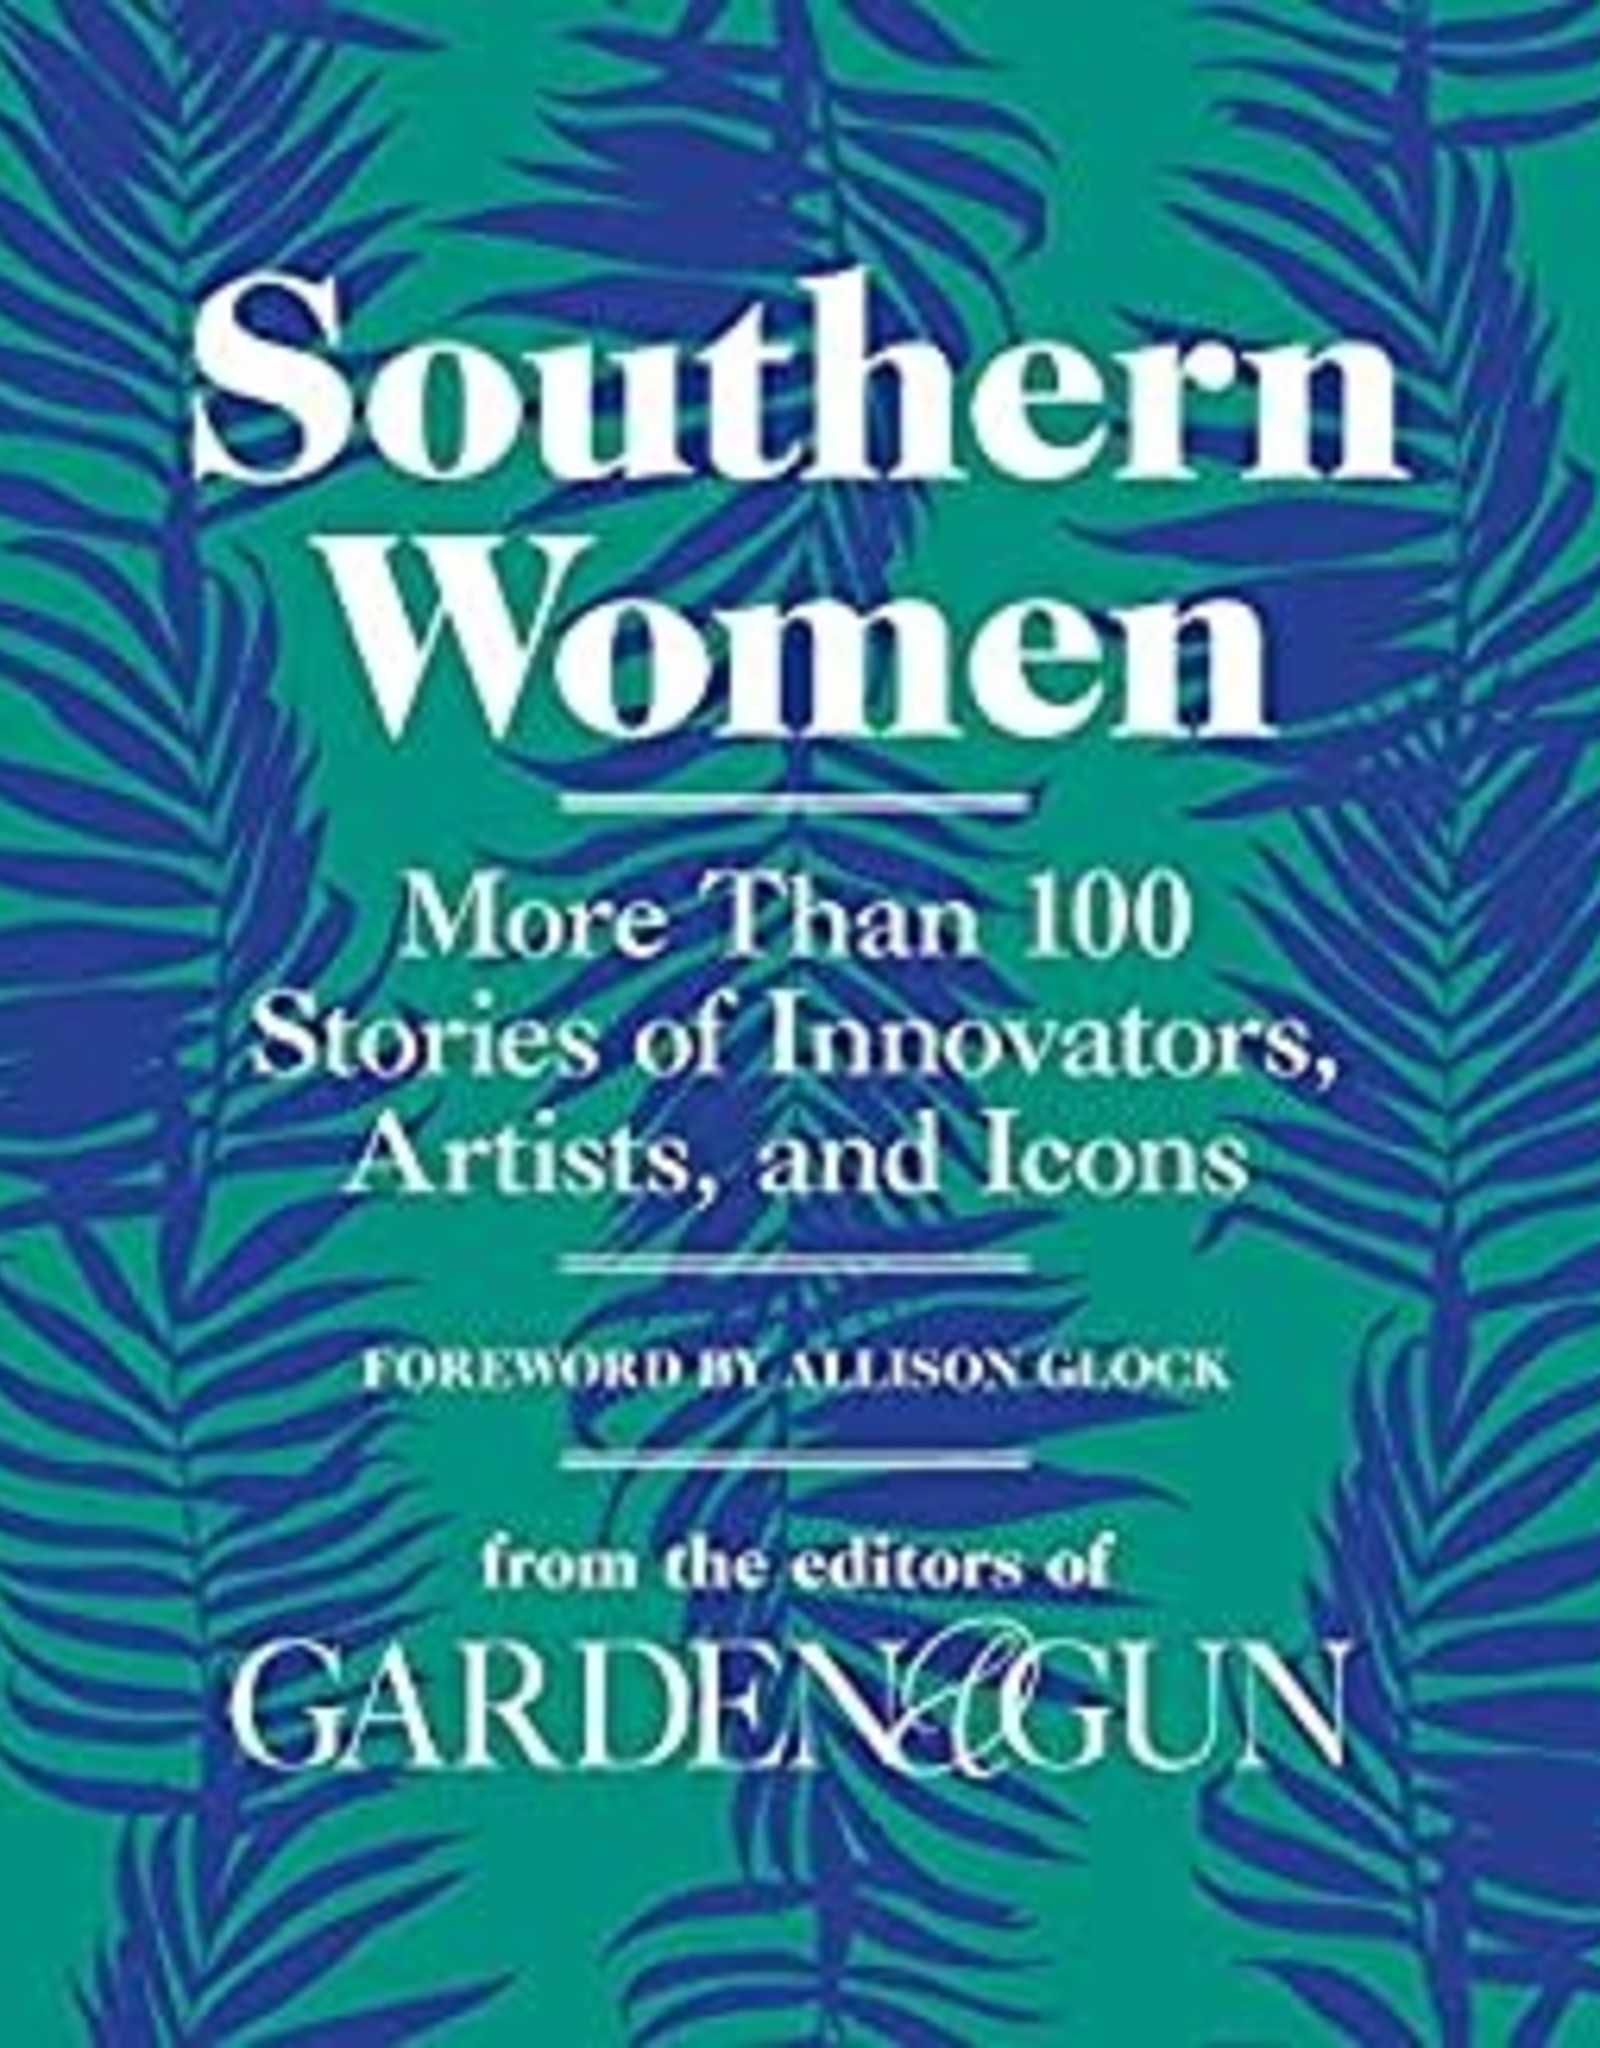 Harper Collins Southern Women: More than 100 Stories of Innovators, Artists, and Icons